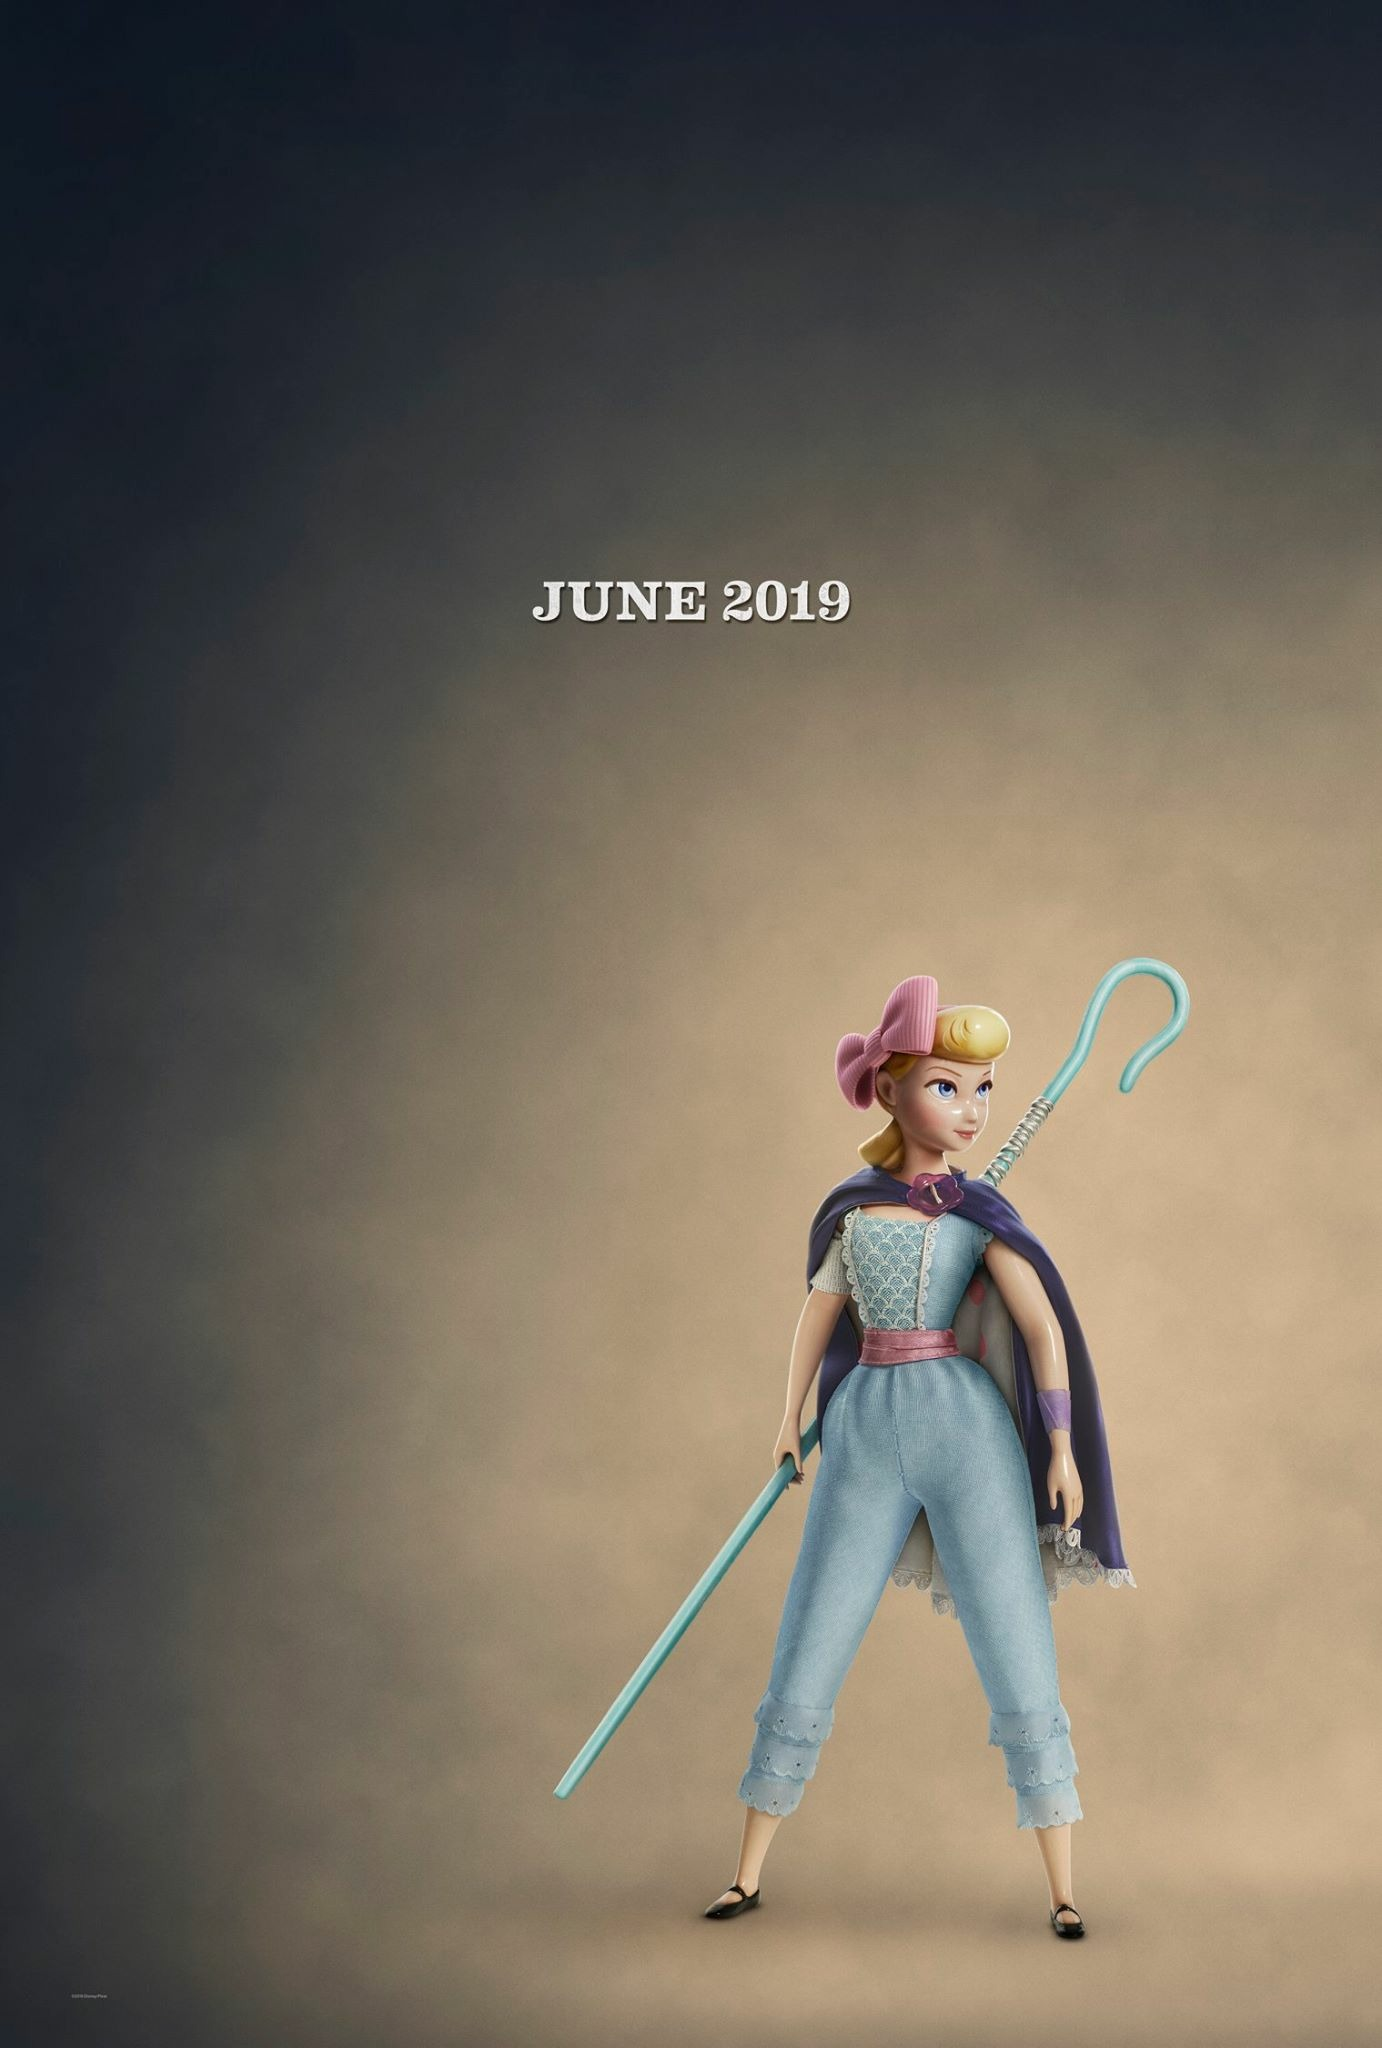 Toy Story 4 Character Posters Annie Potts is Bo Peep